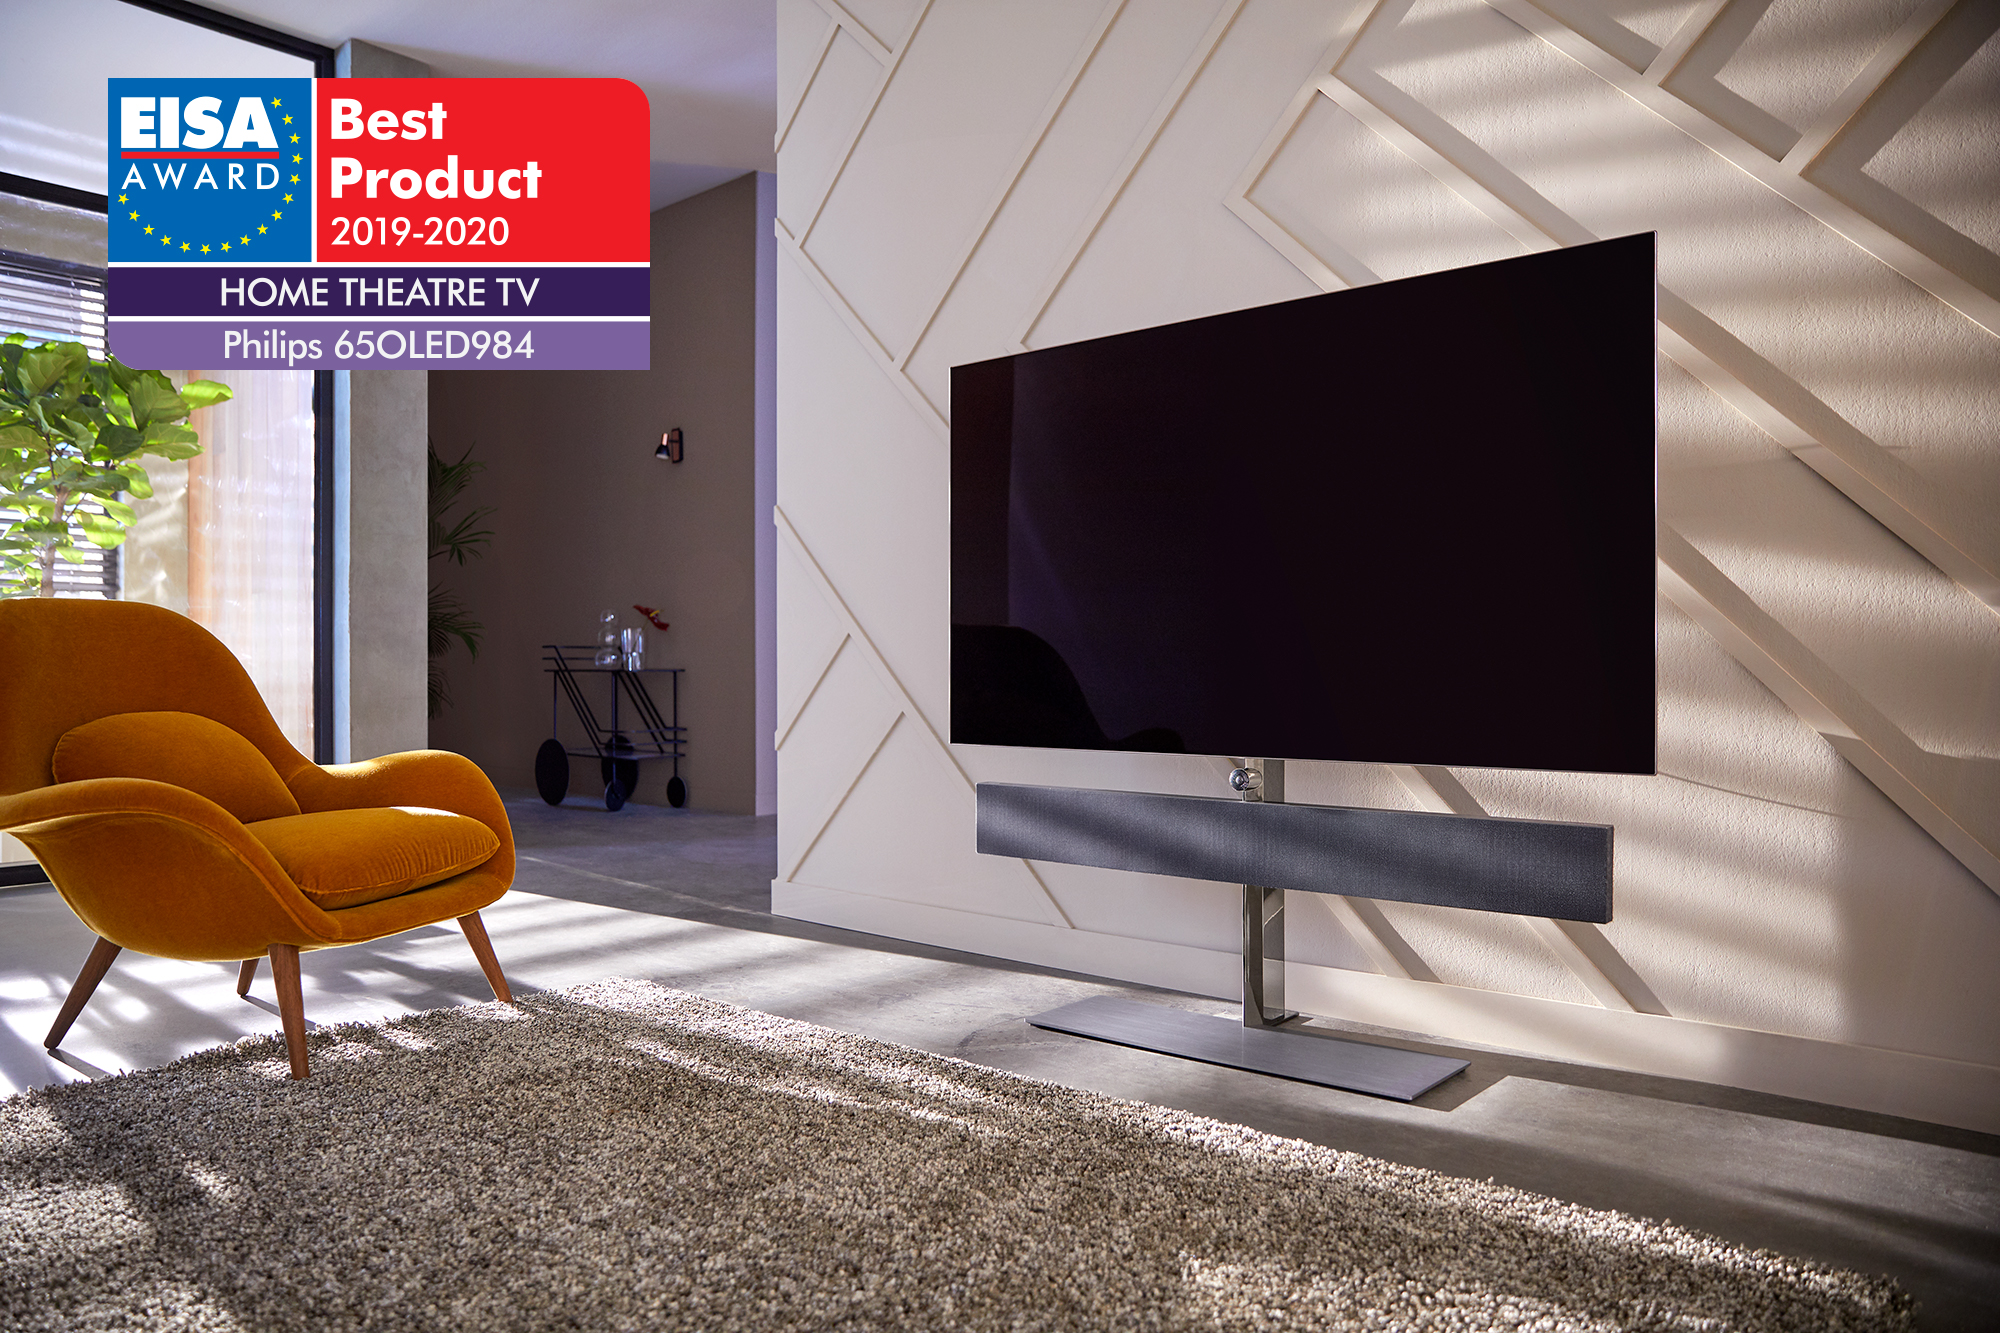 Philips 2019: 65OLED984/12 EISA AWARD - HOME THEATRE TV - Best Product 2019-2020